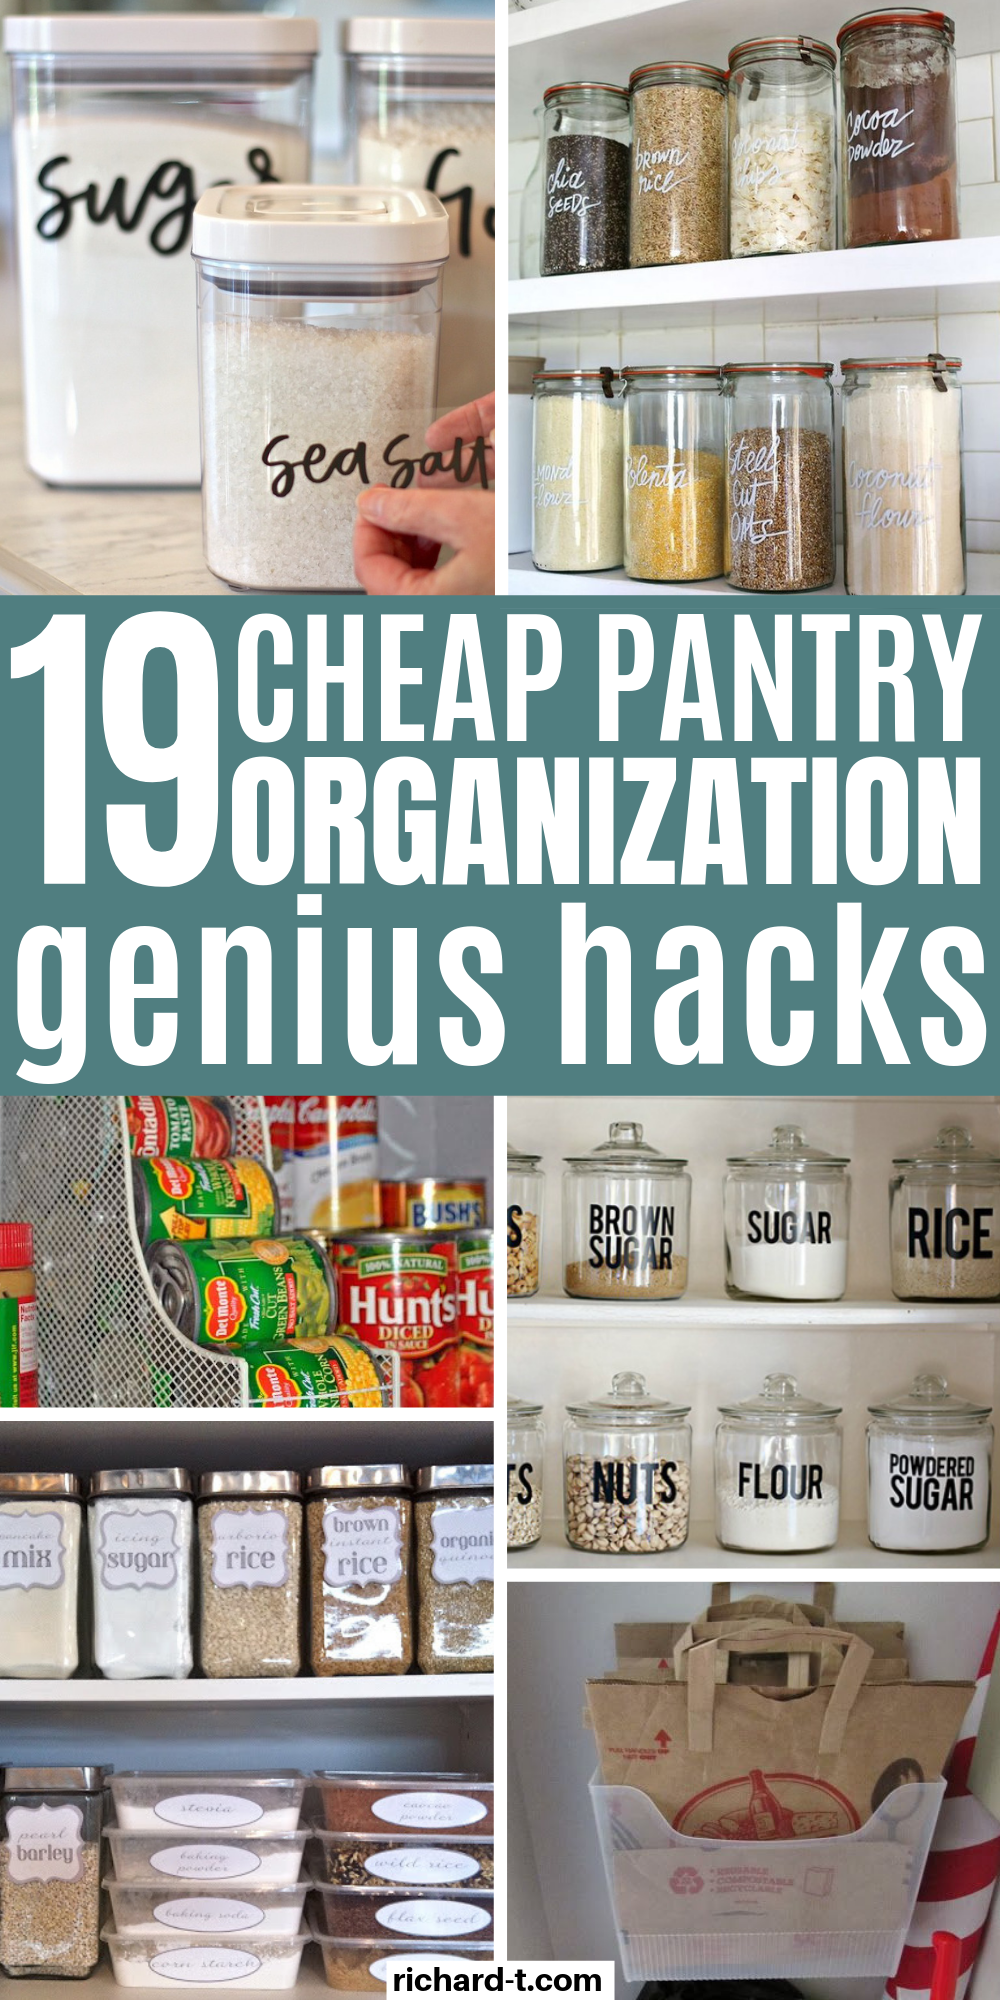 19 Pantry Organization Ideas That'll Blow Your Mind #kitchenpantryorganization